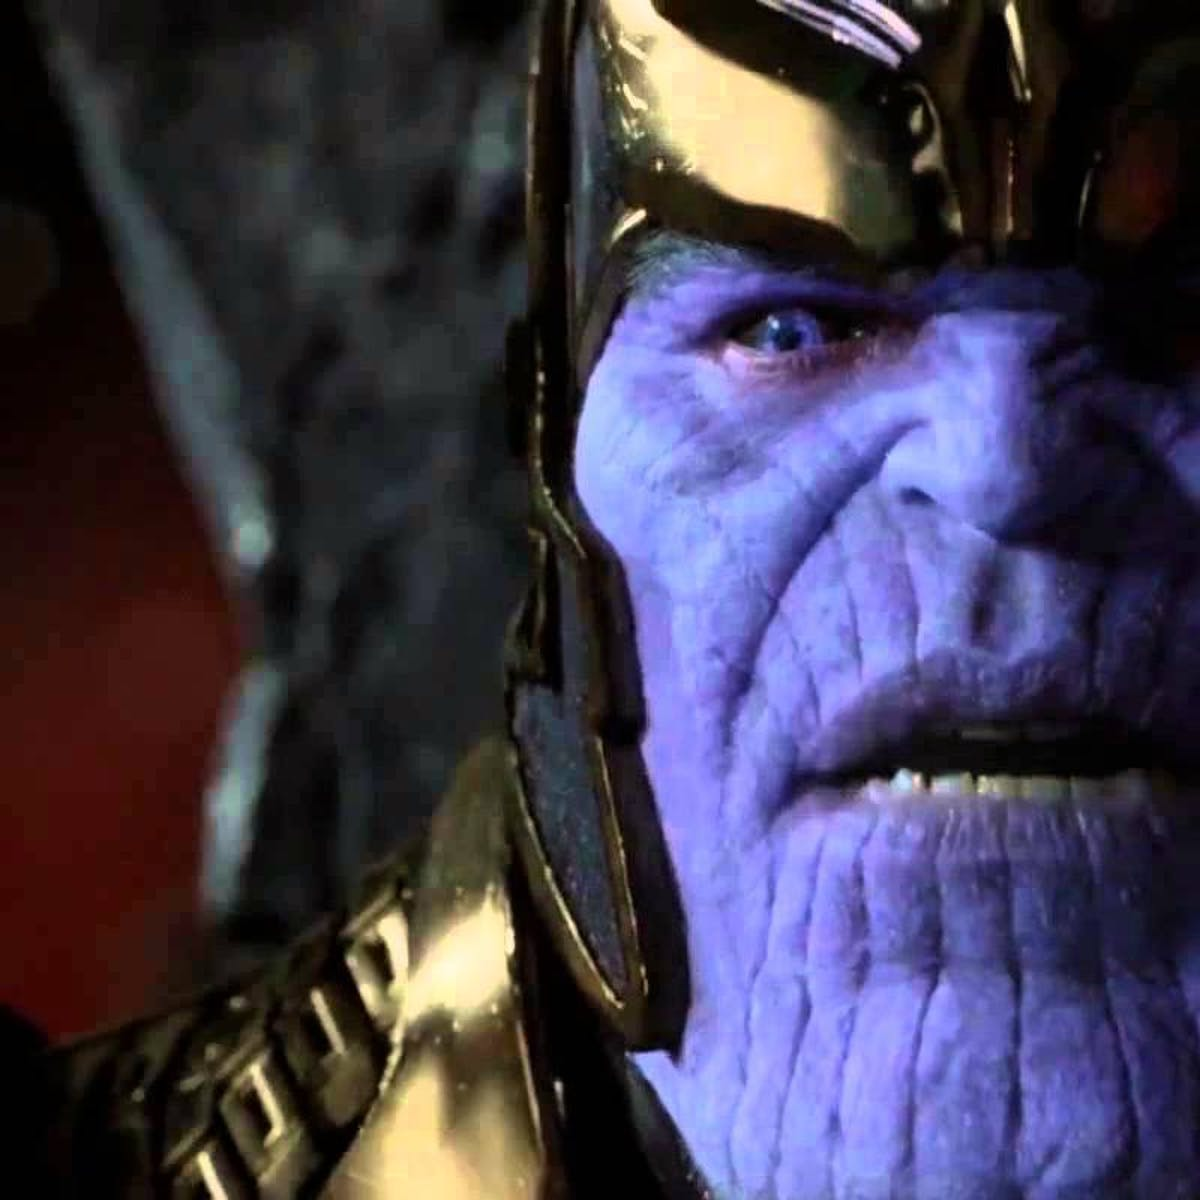 Marvel's Avengers 'Infinity War' Sounds Like a Disaster, 67